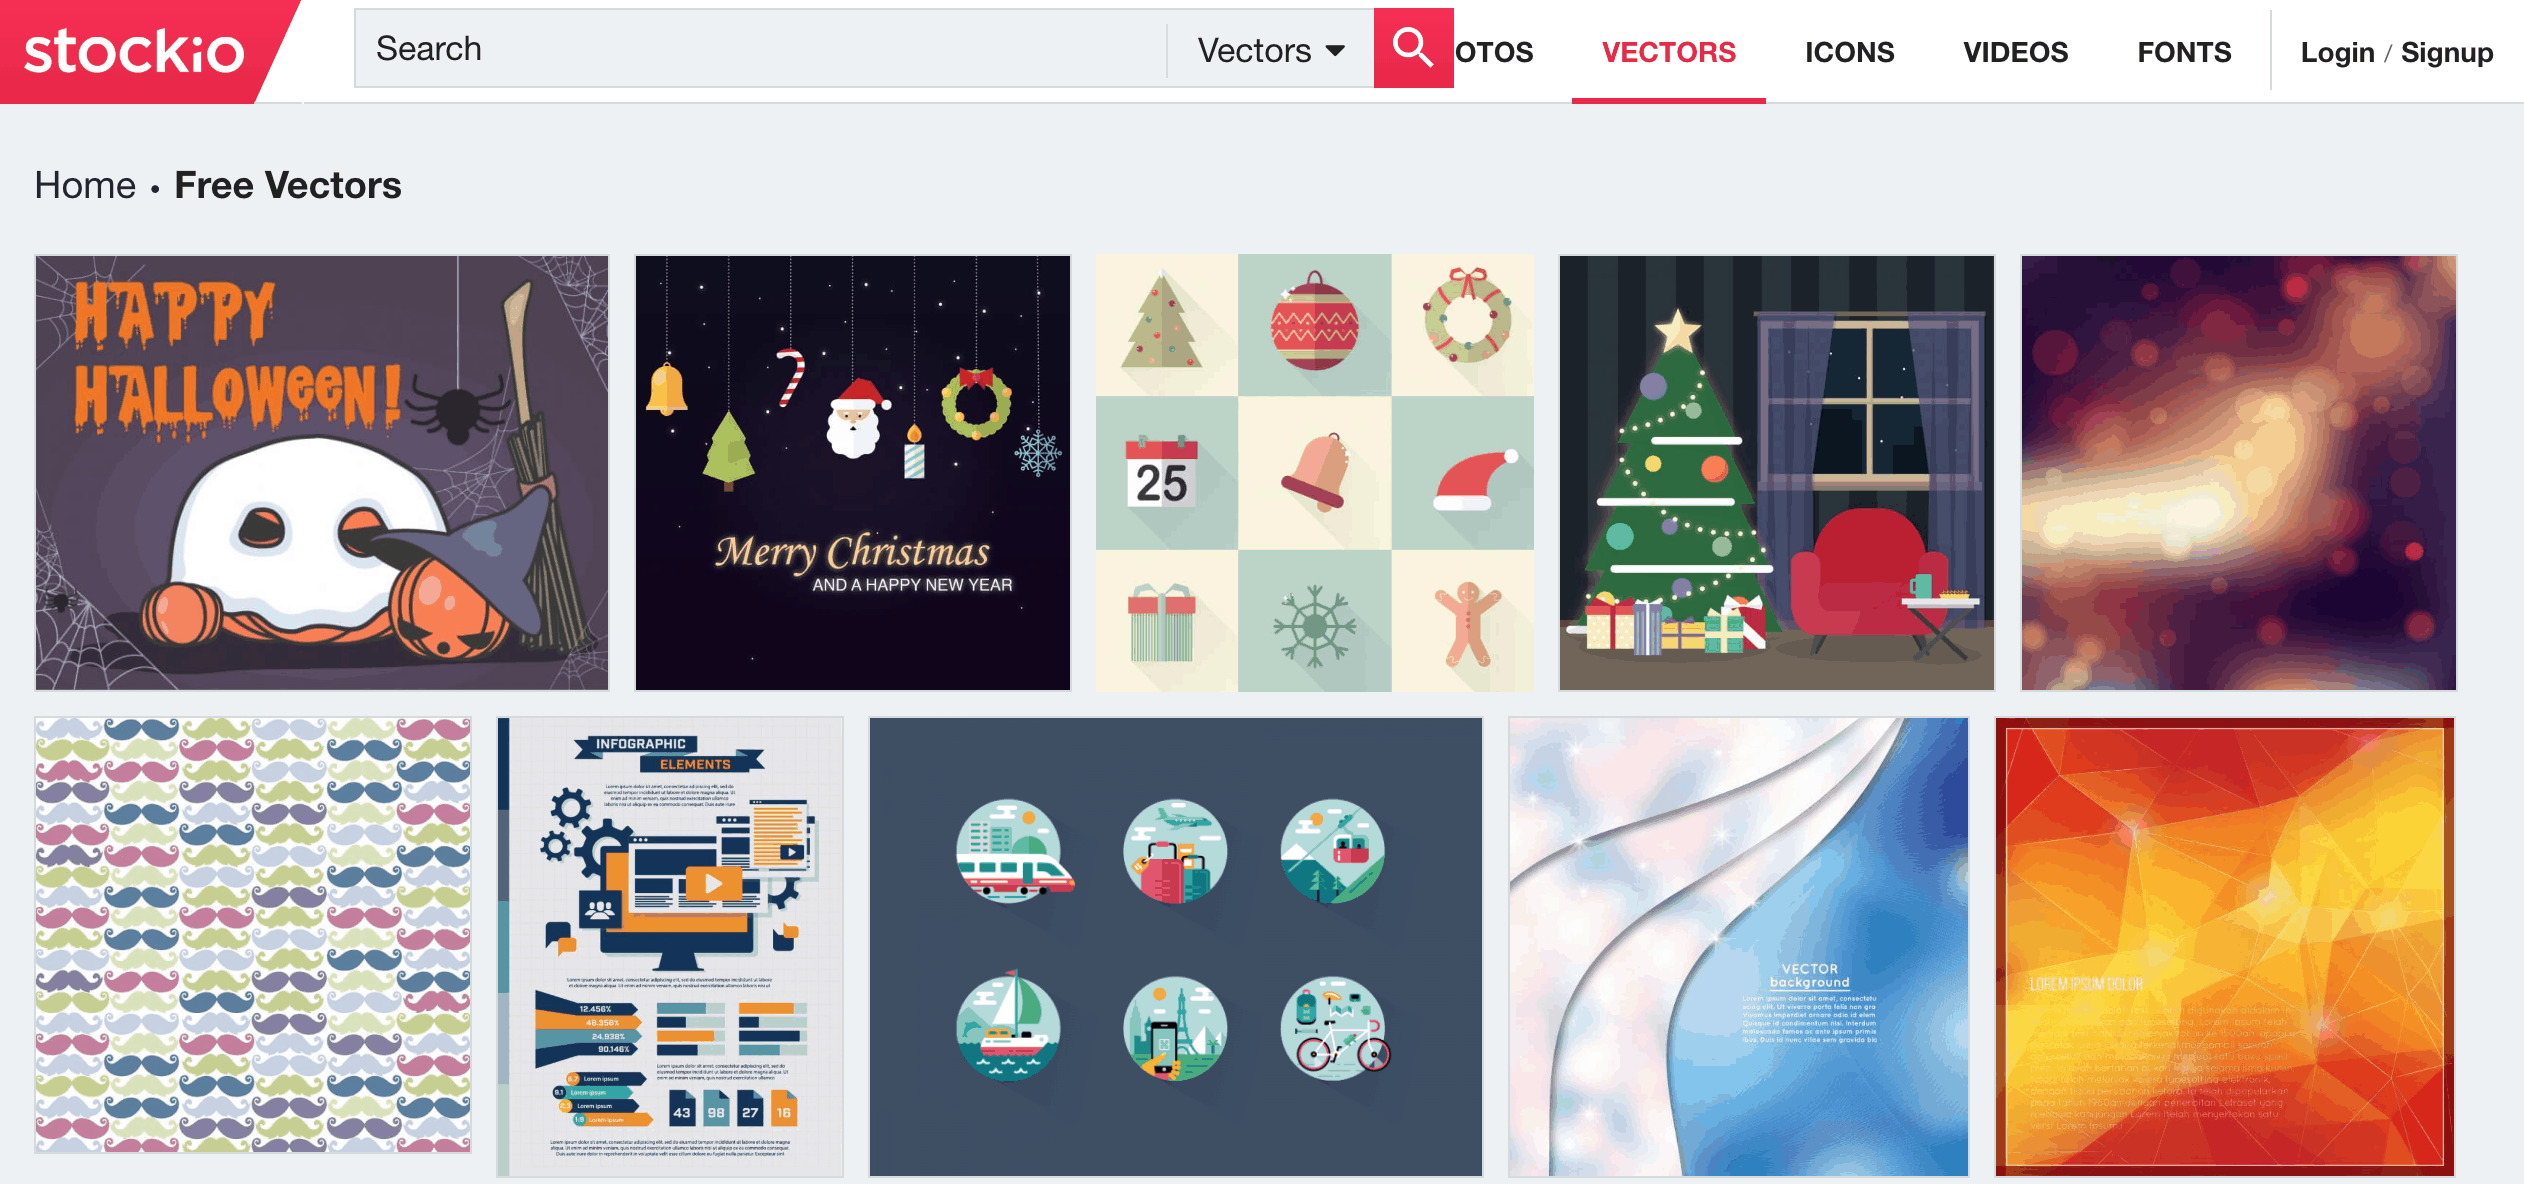 10 Best Free Vector Websites for Designers from UIGarage